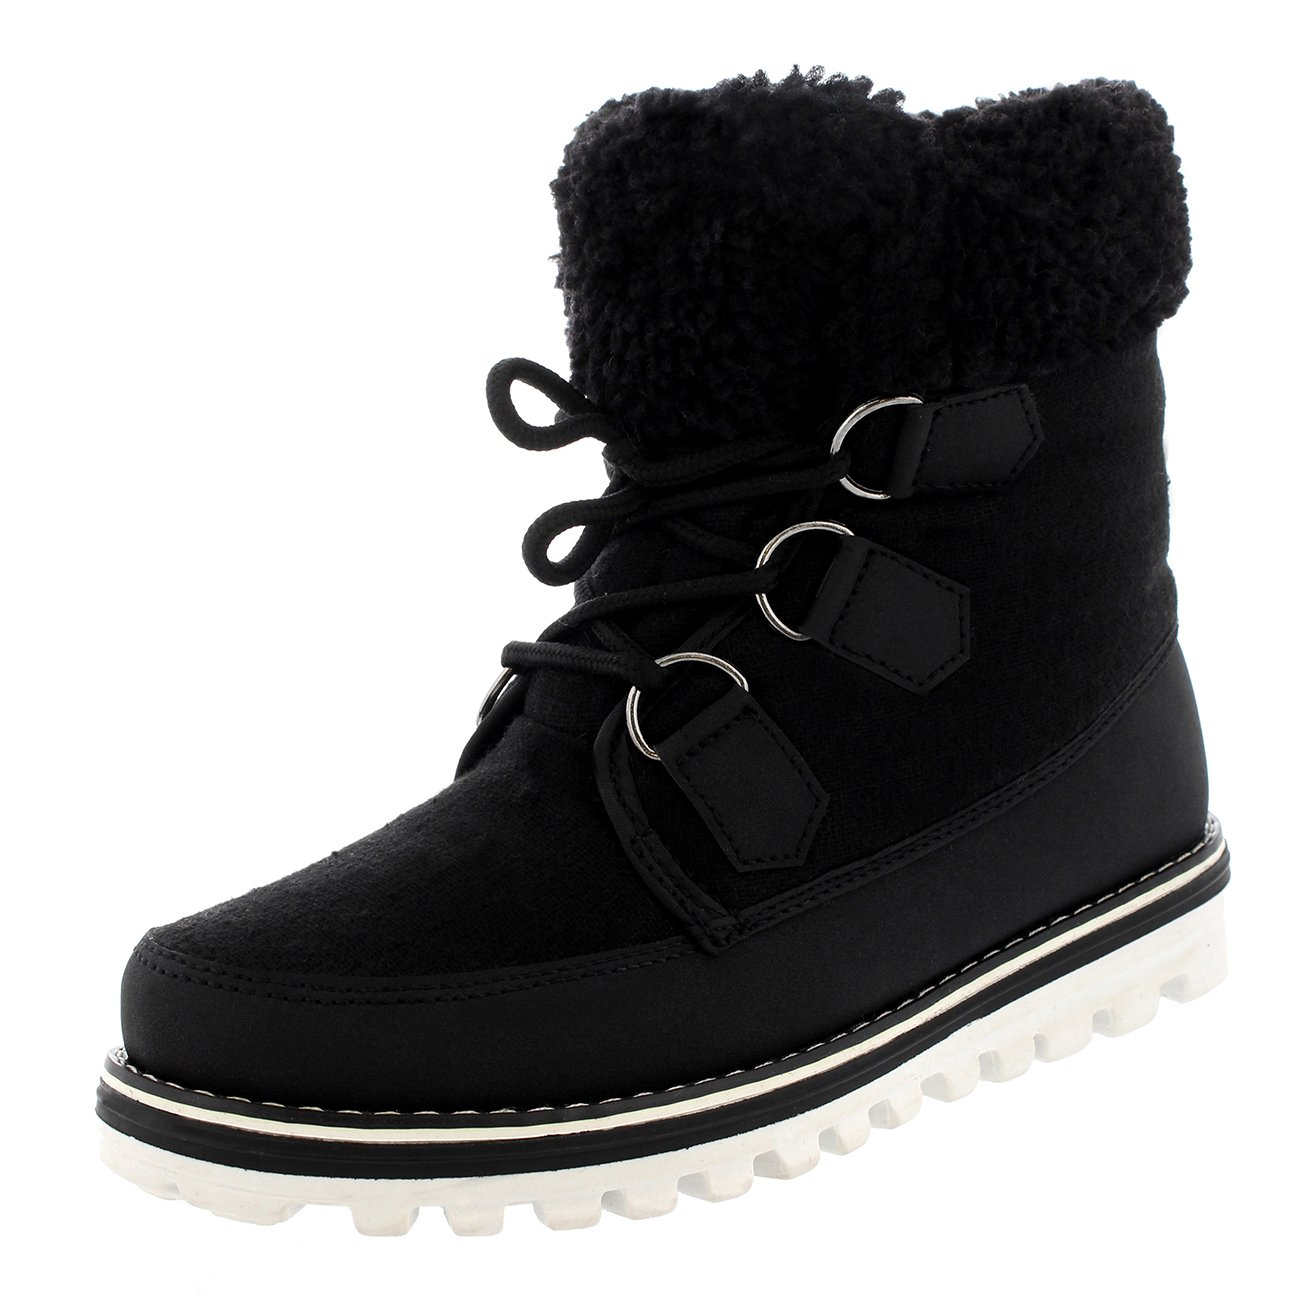 Polar Products Womens Quilted Short Faux Fur Snow Waterproof Winter Durable Side Zipper Sneaker Boots B07287R23V 10 B(M) US Black Textile